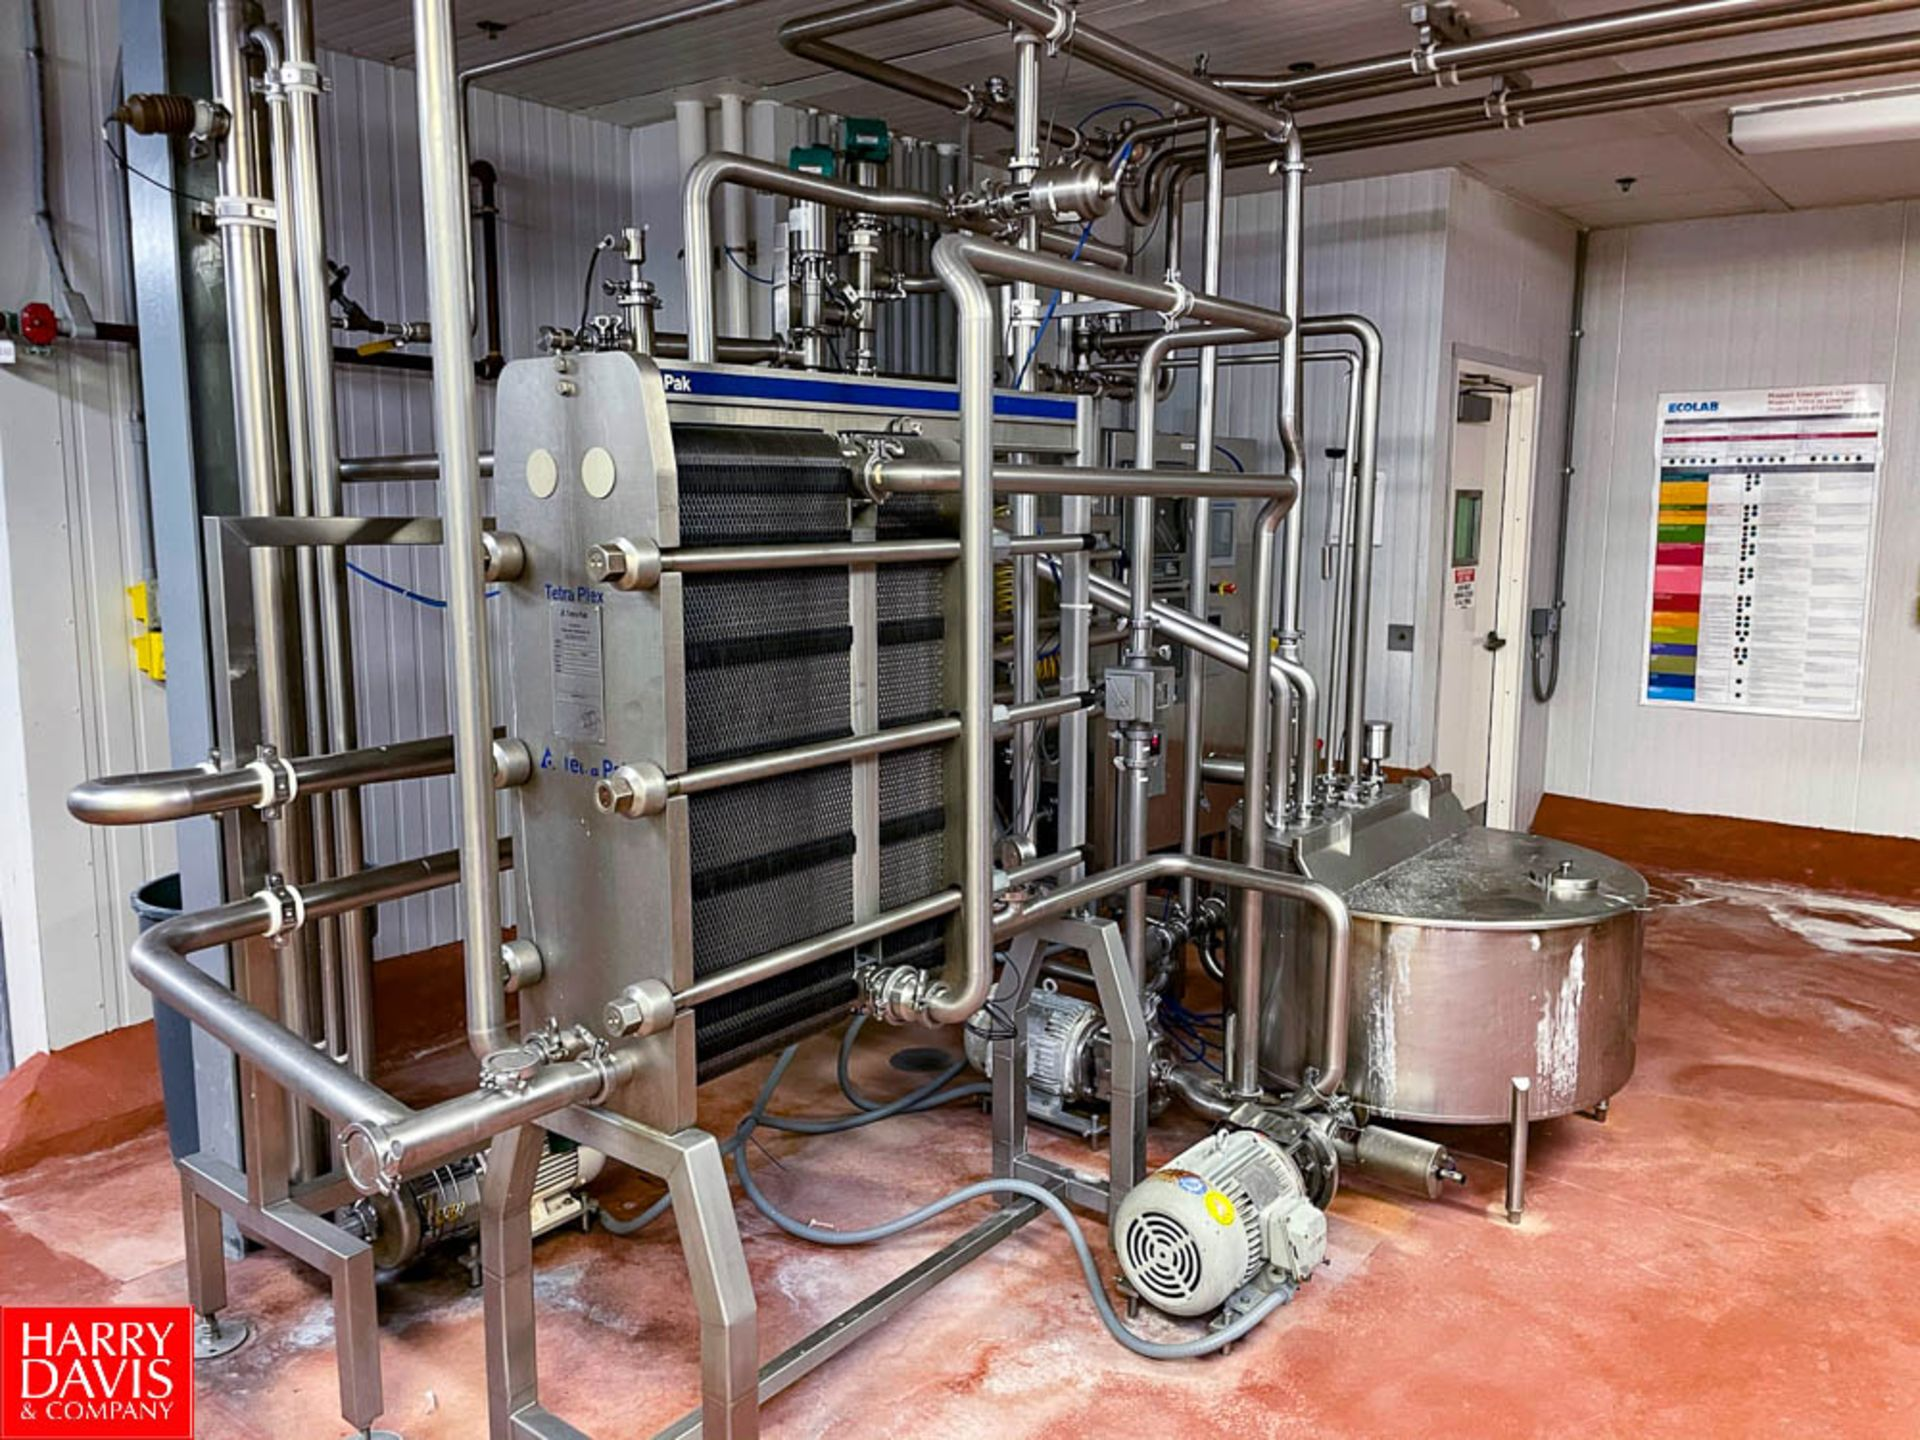 2008 Tetra Pak 36 GPM Pasteurizer Including Tetra Pak 3-Zone S/S Frame Plate Heat Exchanger, S/S - Image 6 of 6